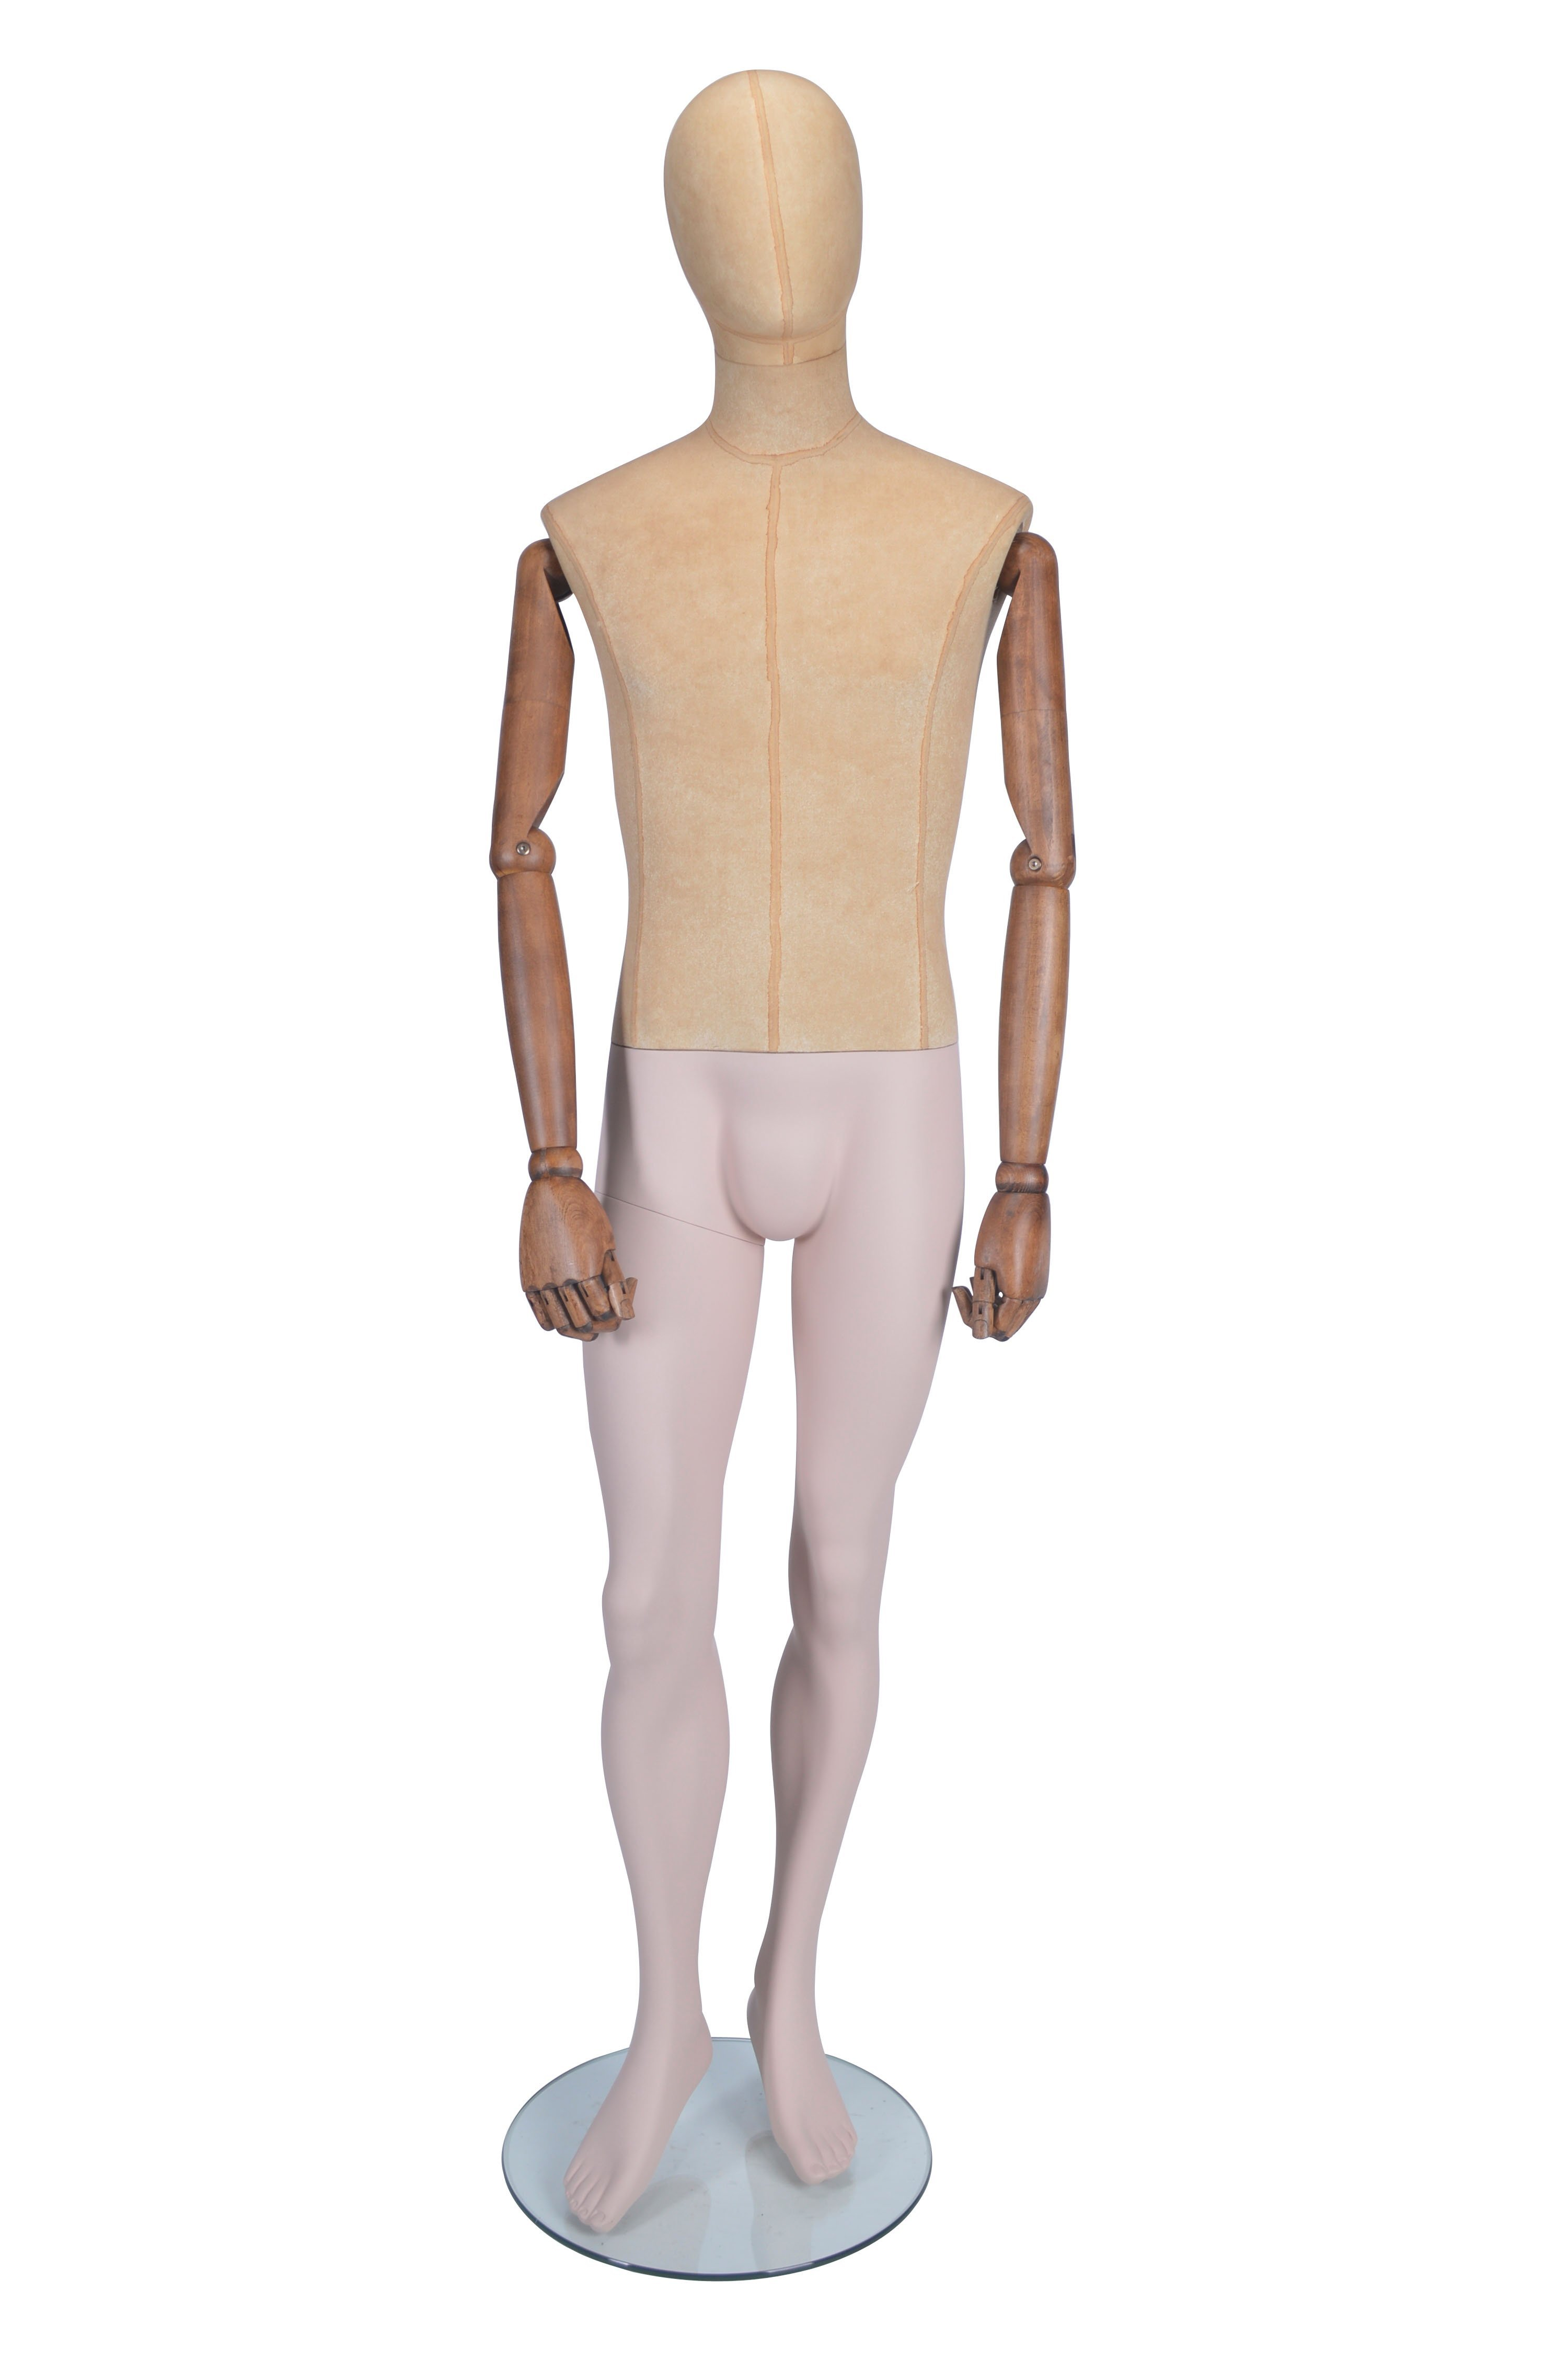 HB1002238 - Standing Male Mannequin - Moveable Arms